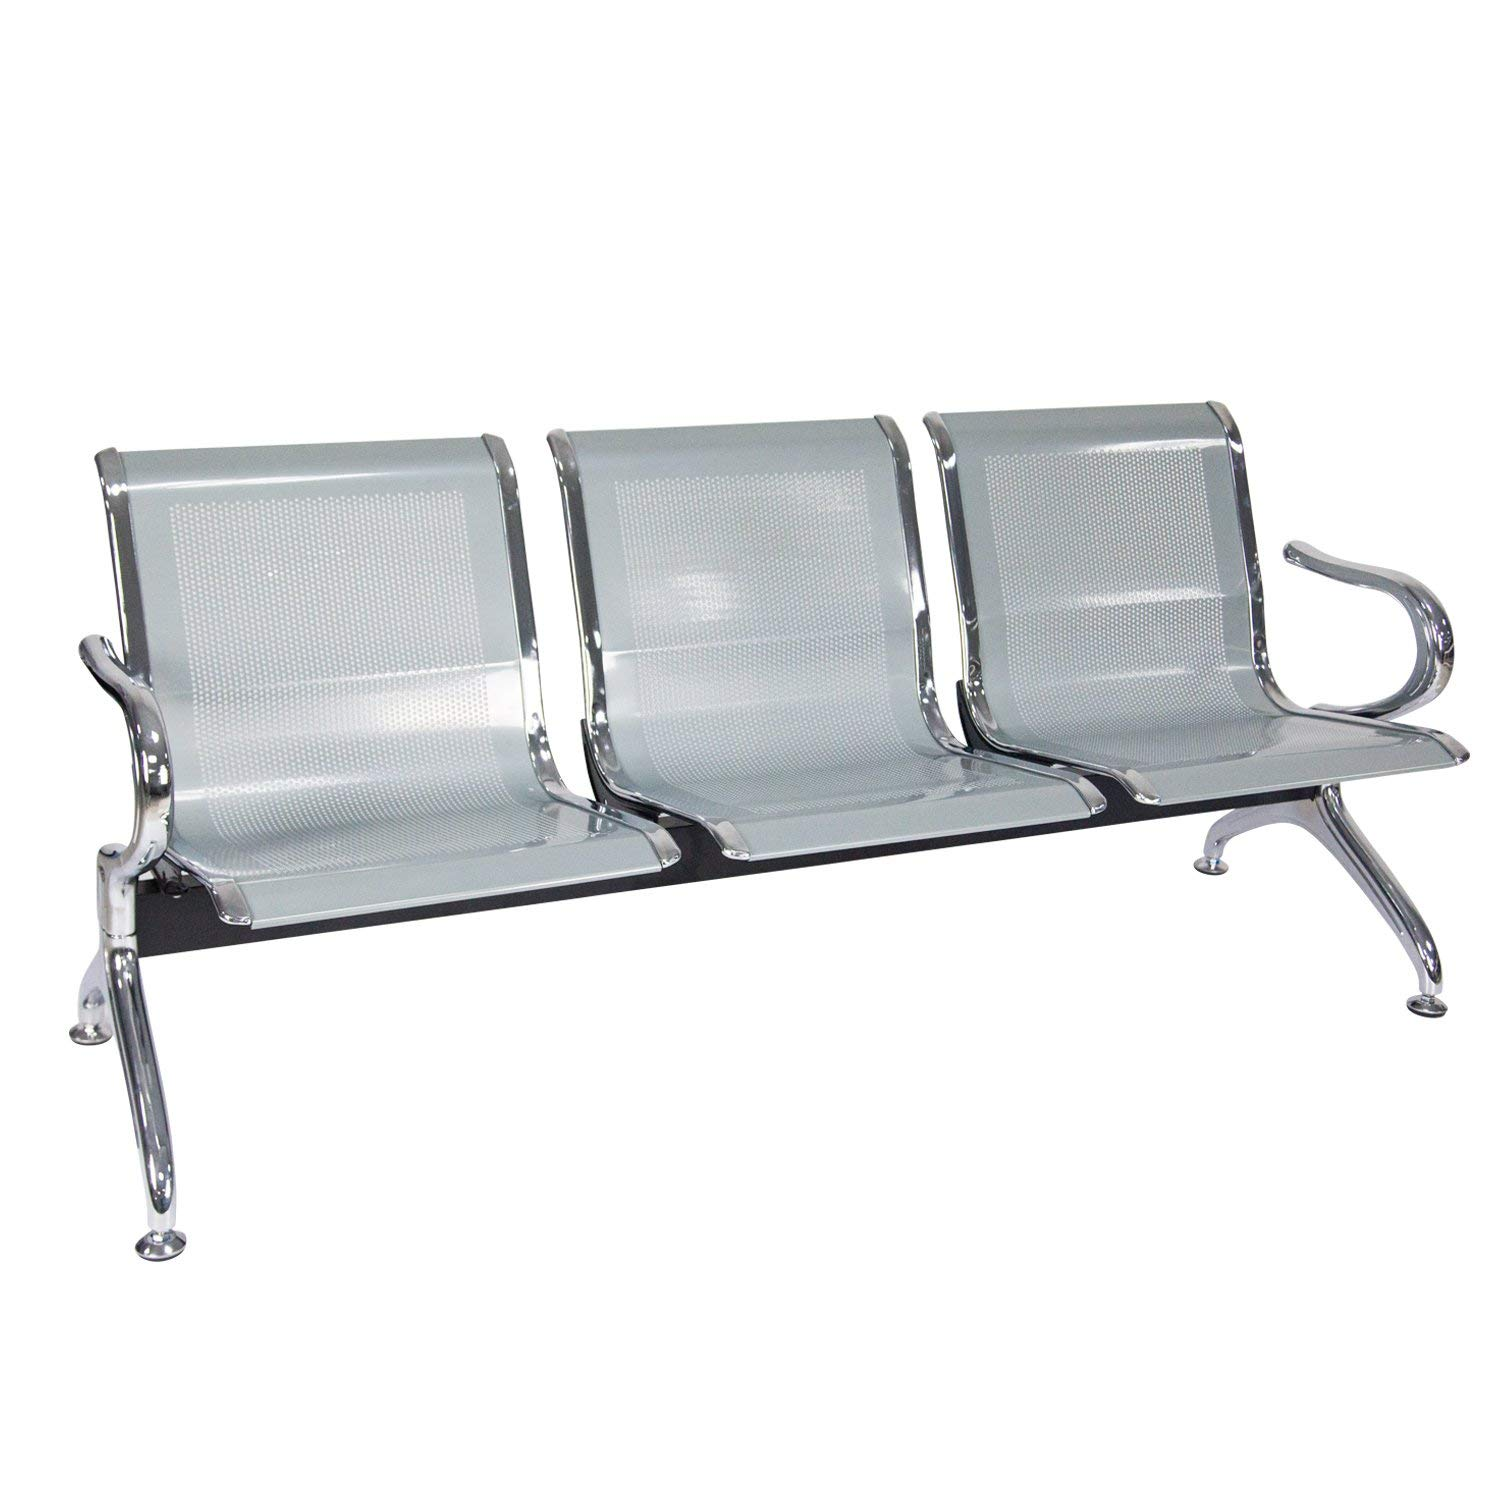 Reception Chair Waiting Room Chair with Arms Reception Bench for Business, Office, Hospital, Market, Airport Silver, 3 Seats